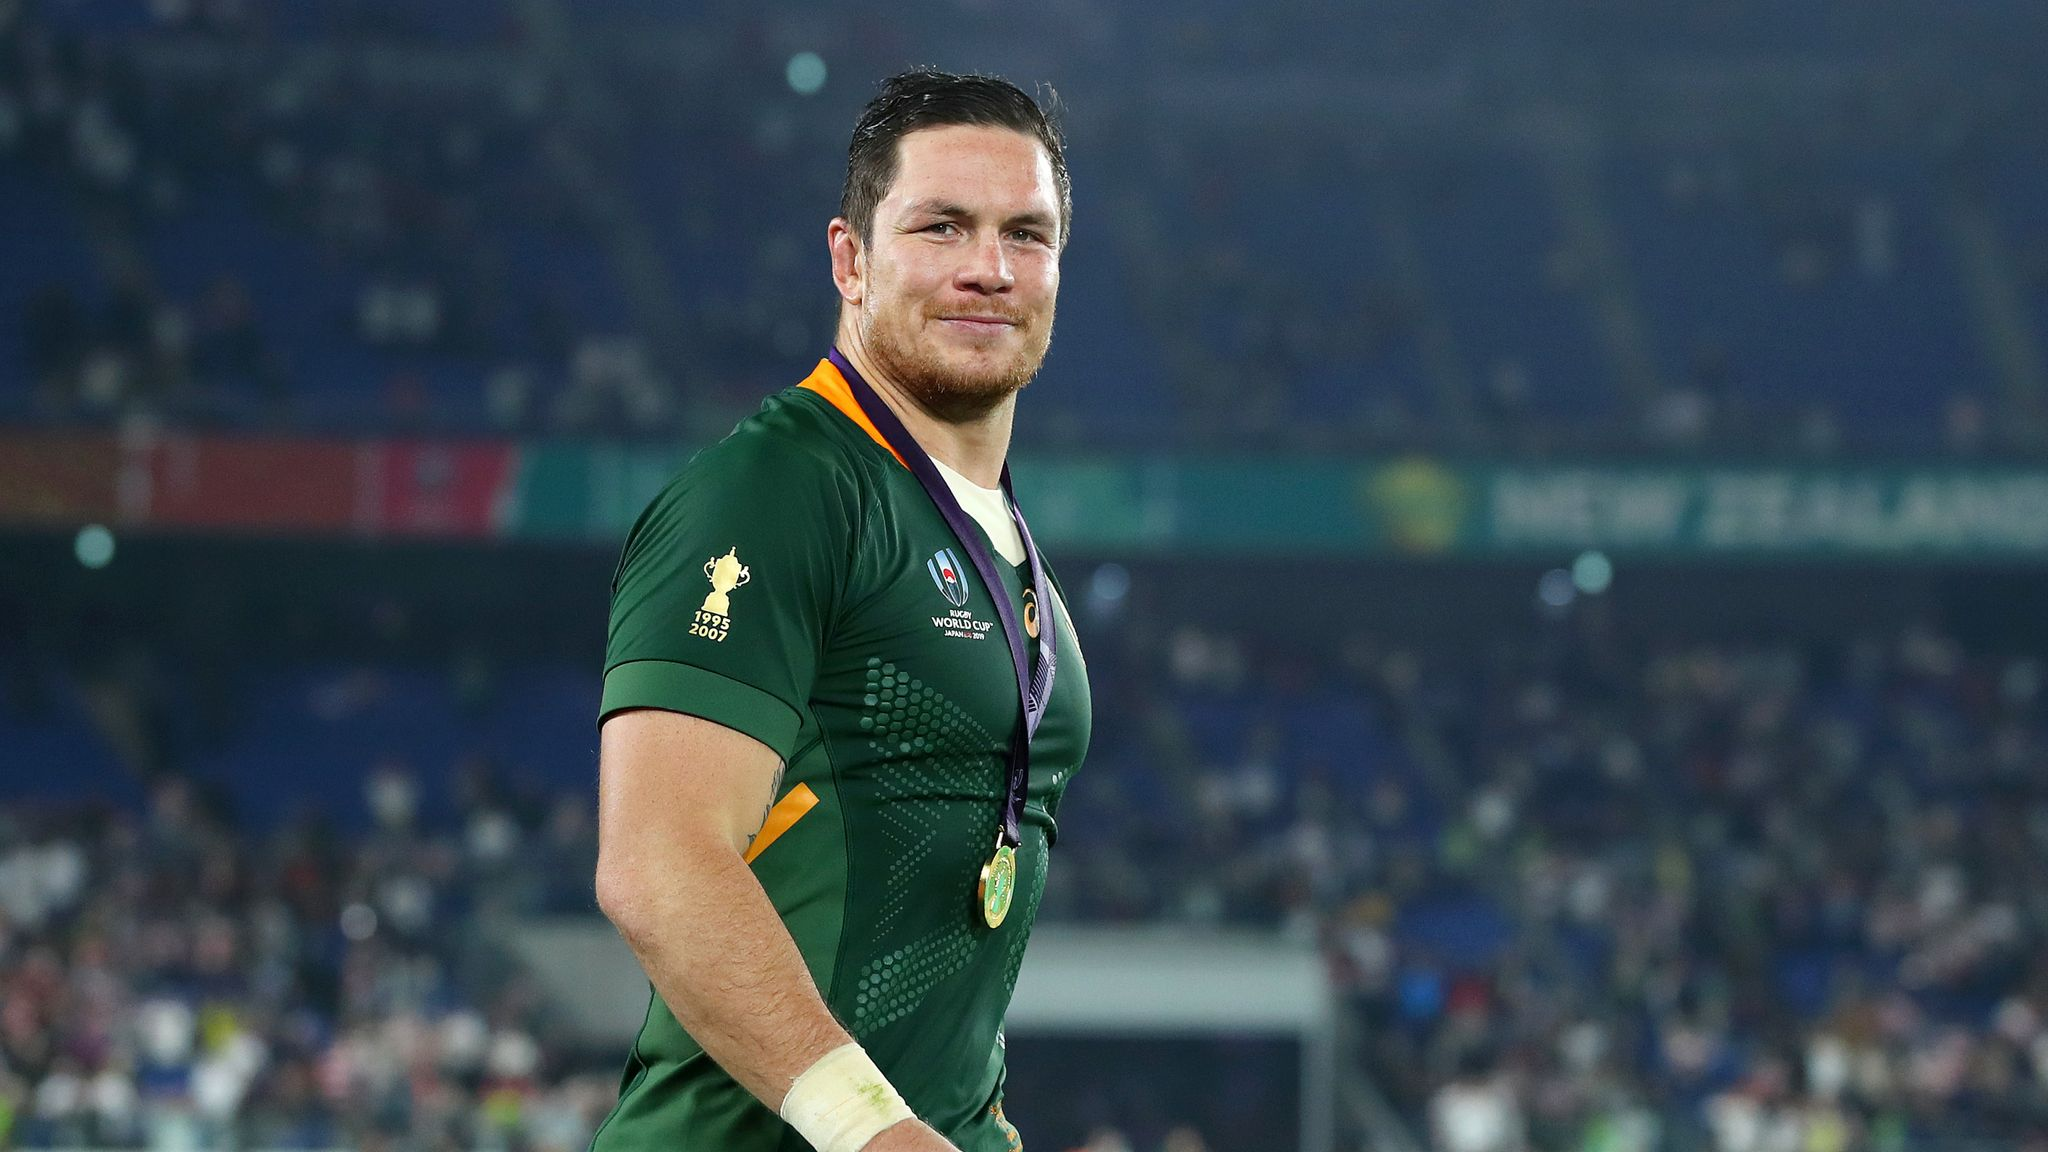 South Africa's Francois Louw retires from international rugby